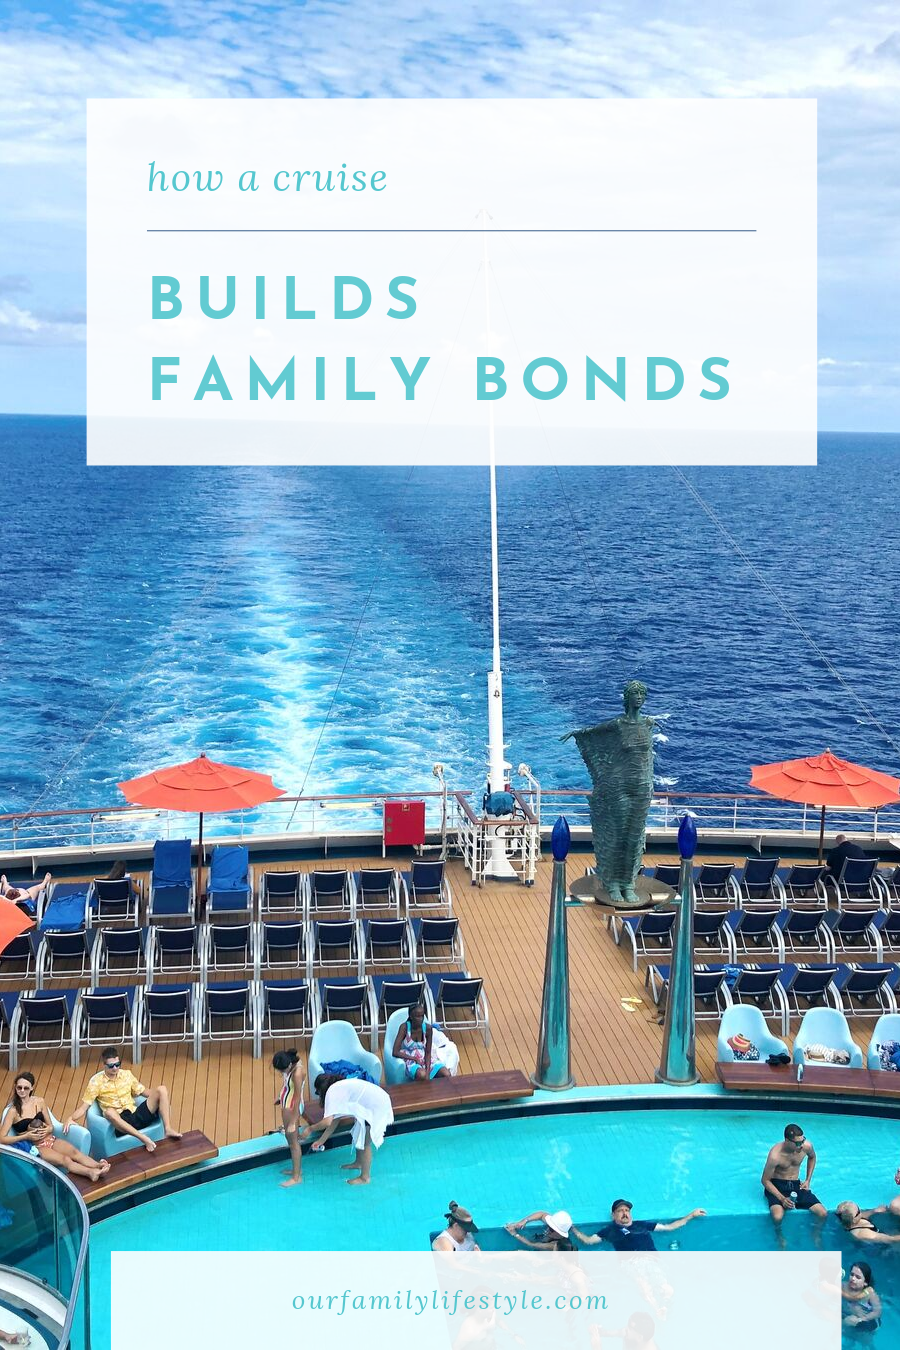 How a Cruise Builds Family Bonds